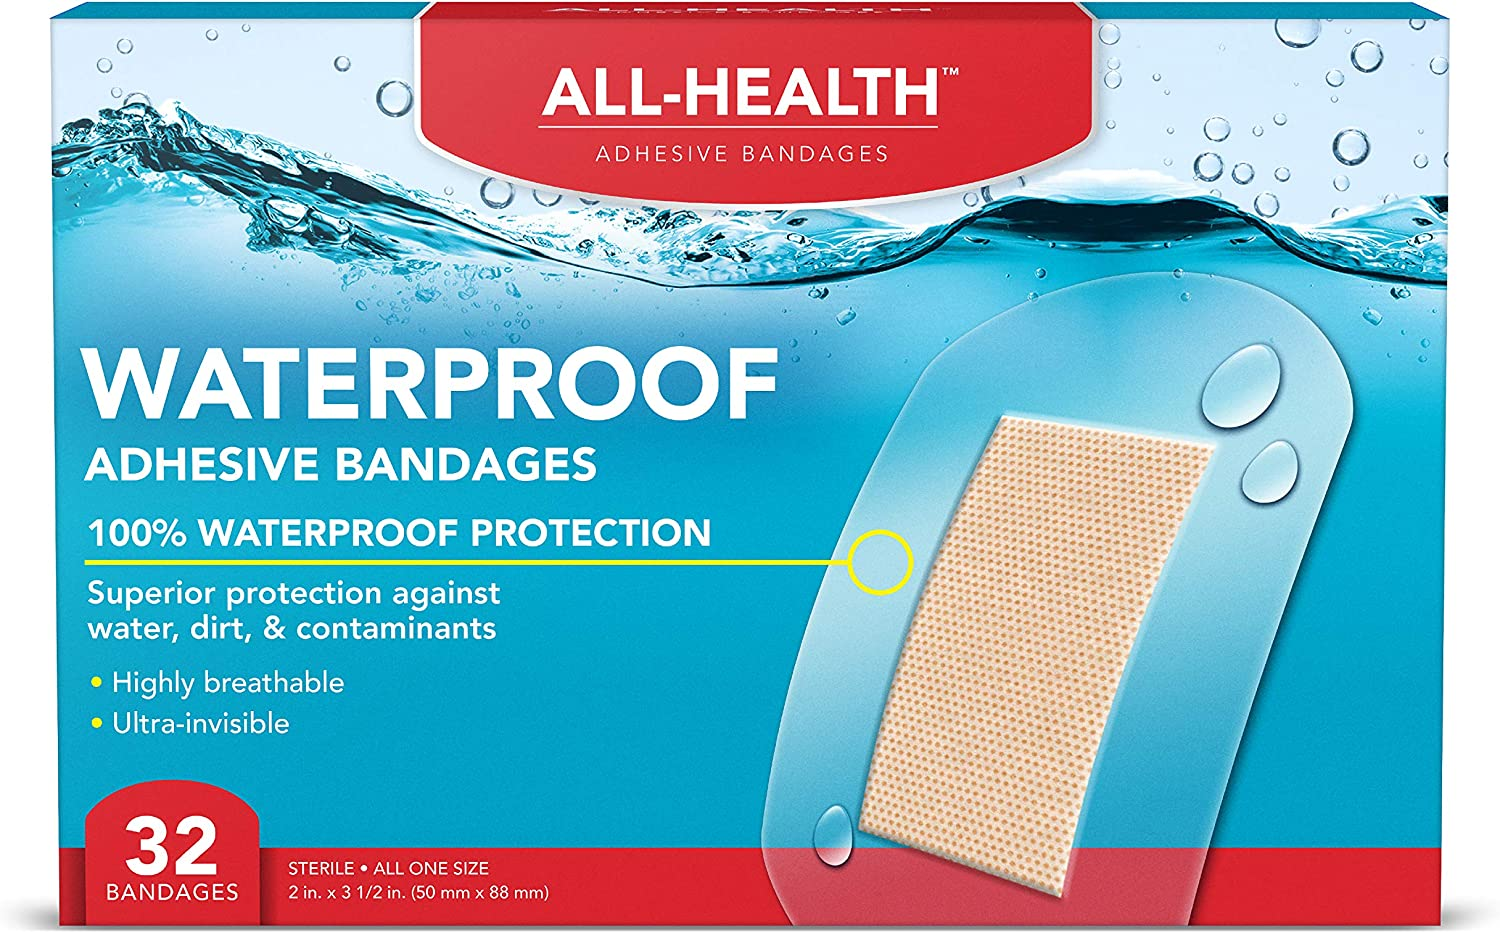 All Health Clear Waterproof Adhesive Bandages, Extra Large 2 in x 3 1/2 in, 32 Count | 100% Waterproof First Aid for Minor Cuts & Scrapes